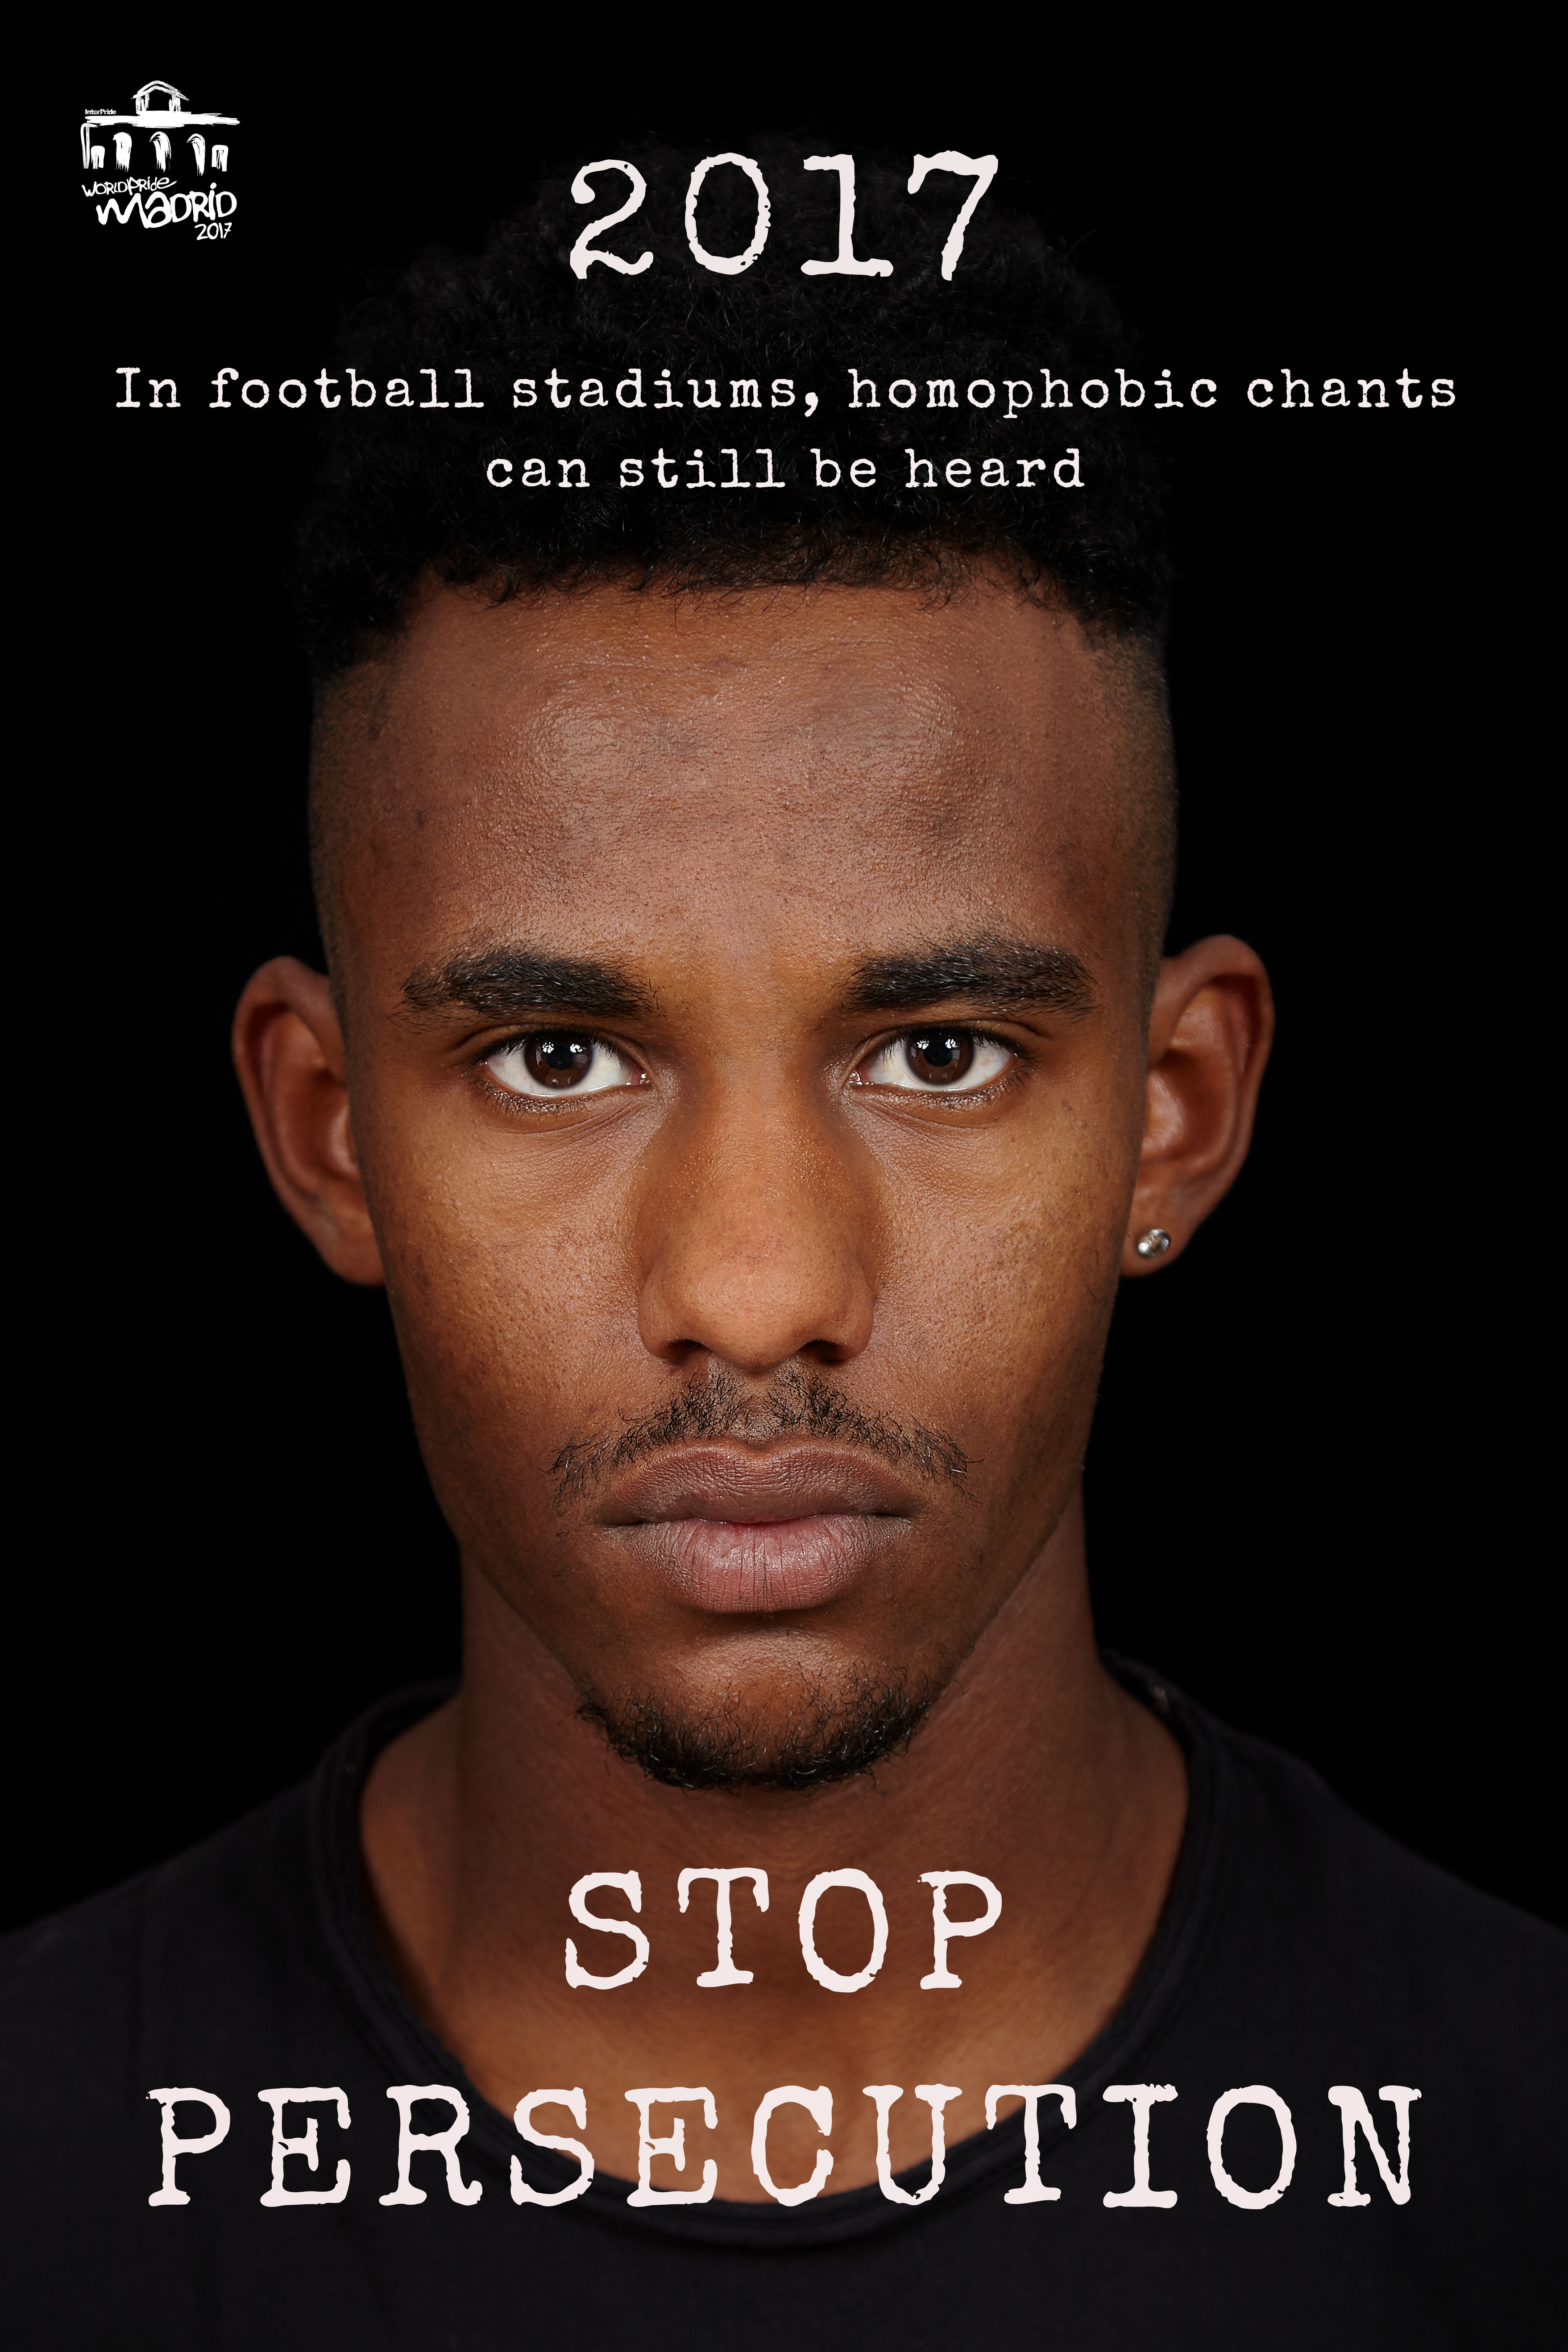 Stop persecution